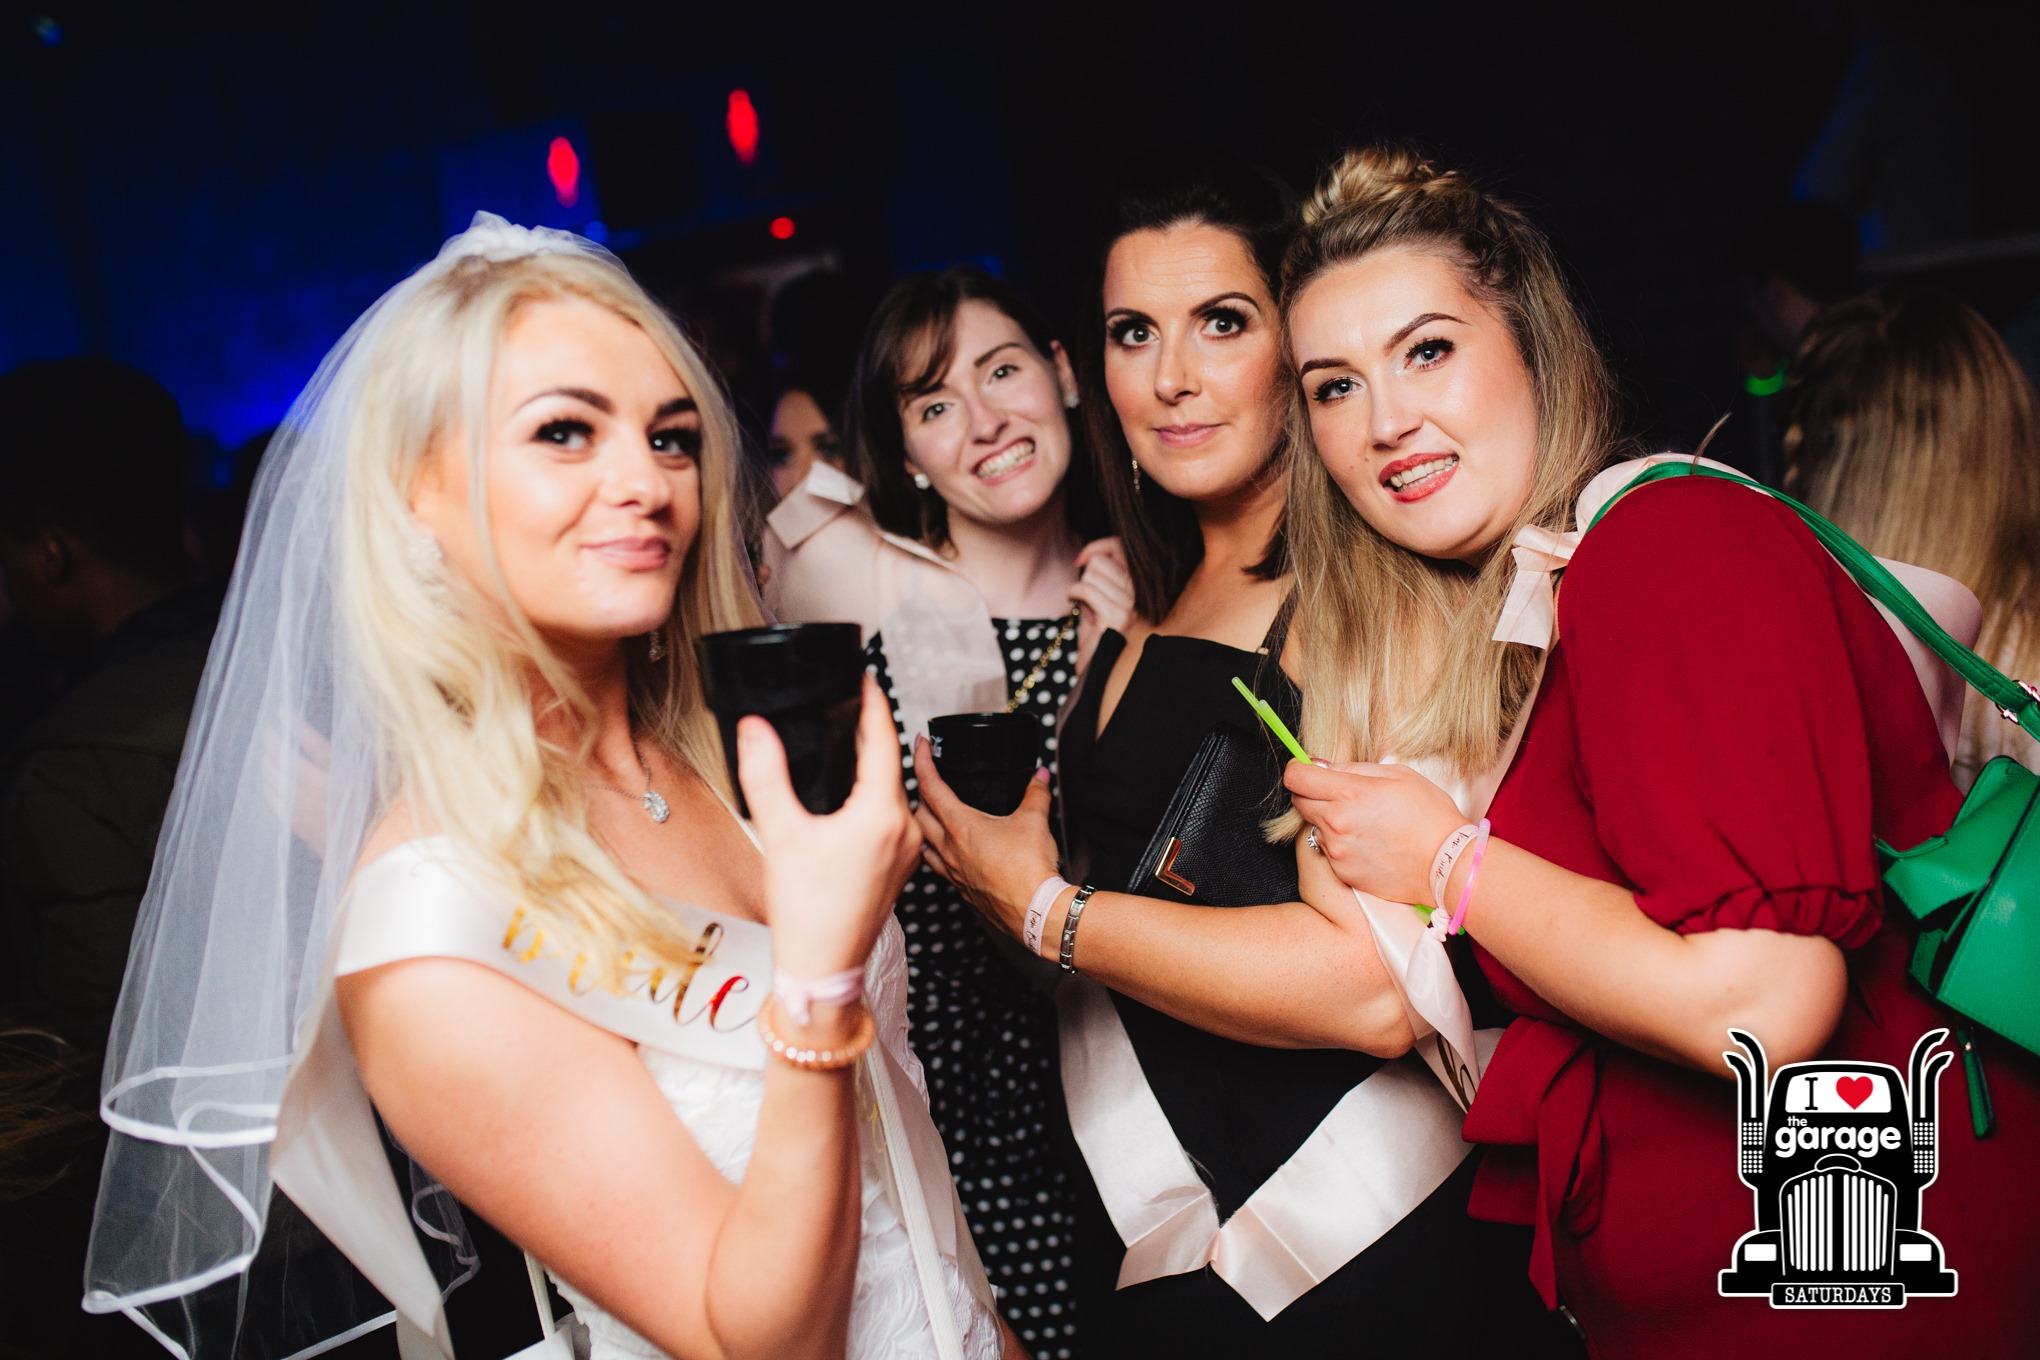 Best of Photos July The Garage Nightclub Glasgow